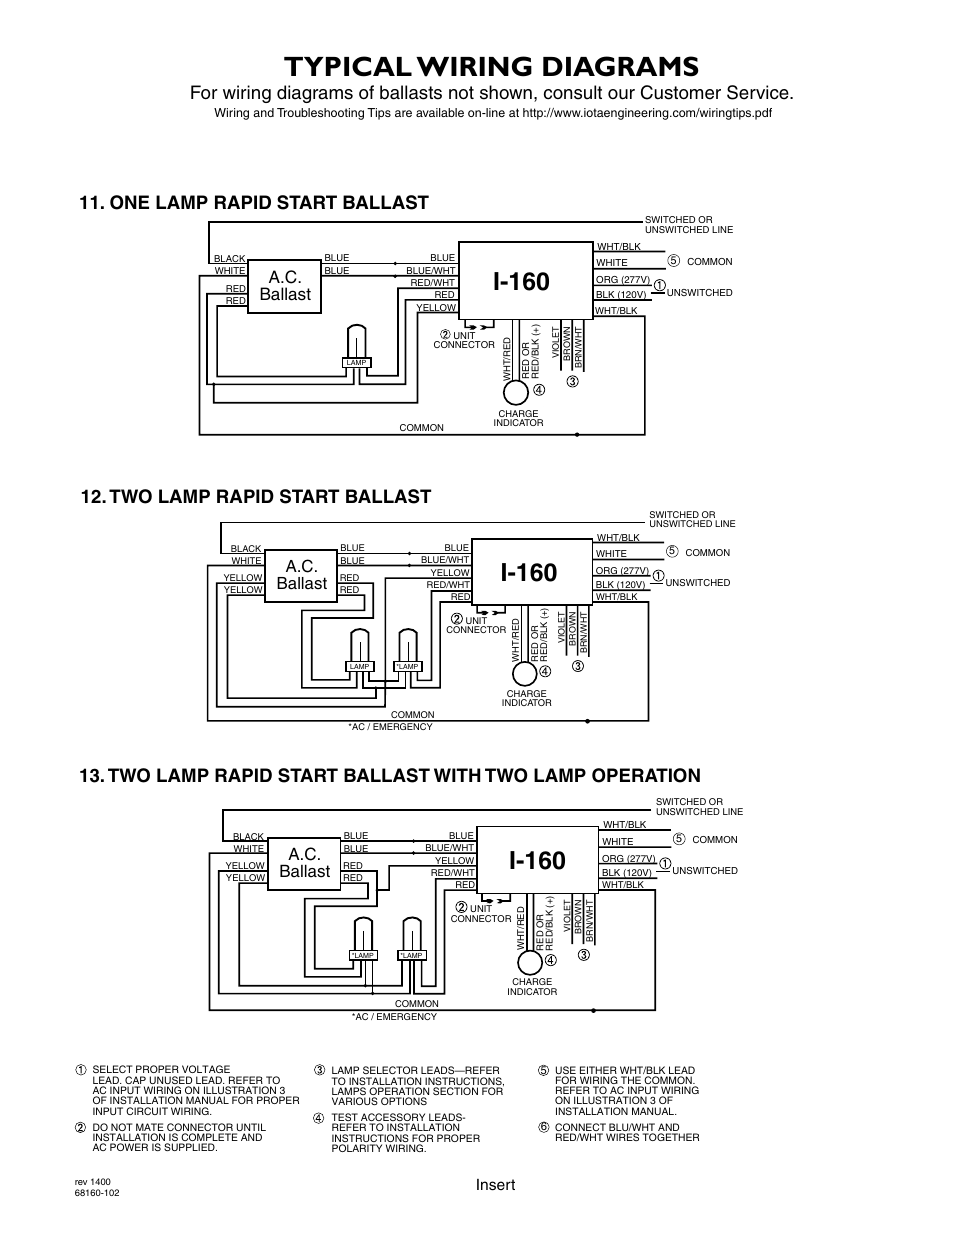 Isl 540 Ballast Wiring Diagram Will Be A Thing Advance Kit M11 18 Images Electronic 3 Lamp